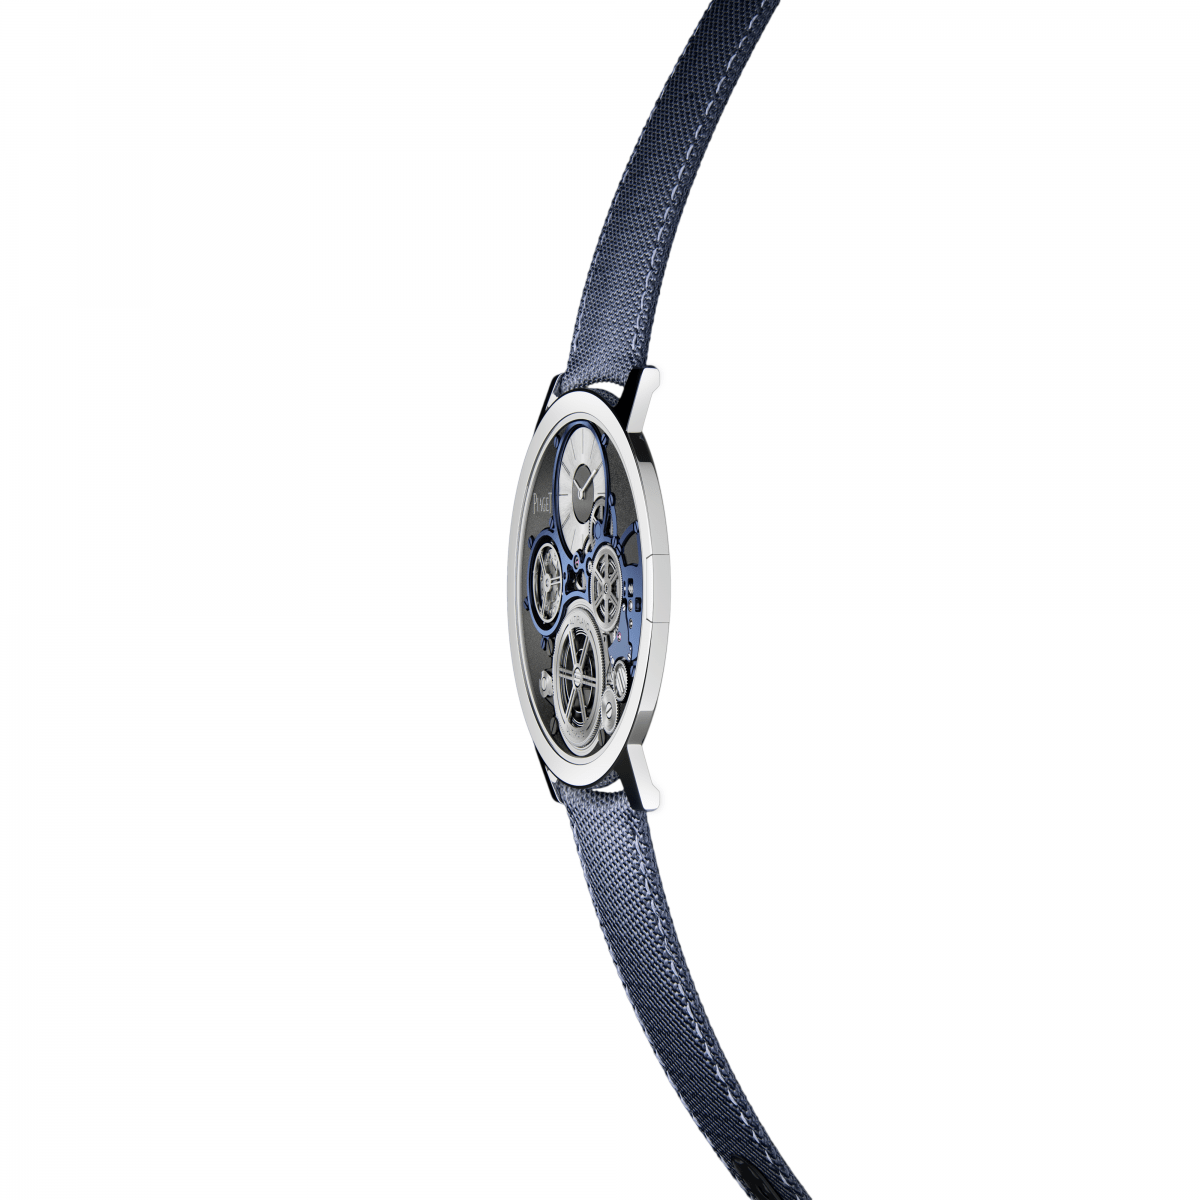 Piaget Altiplano Ultimate Concept | © Piaget